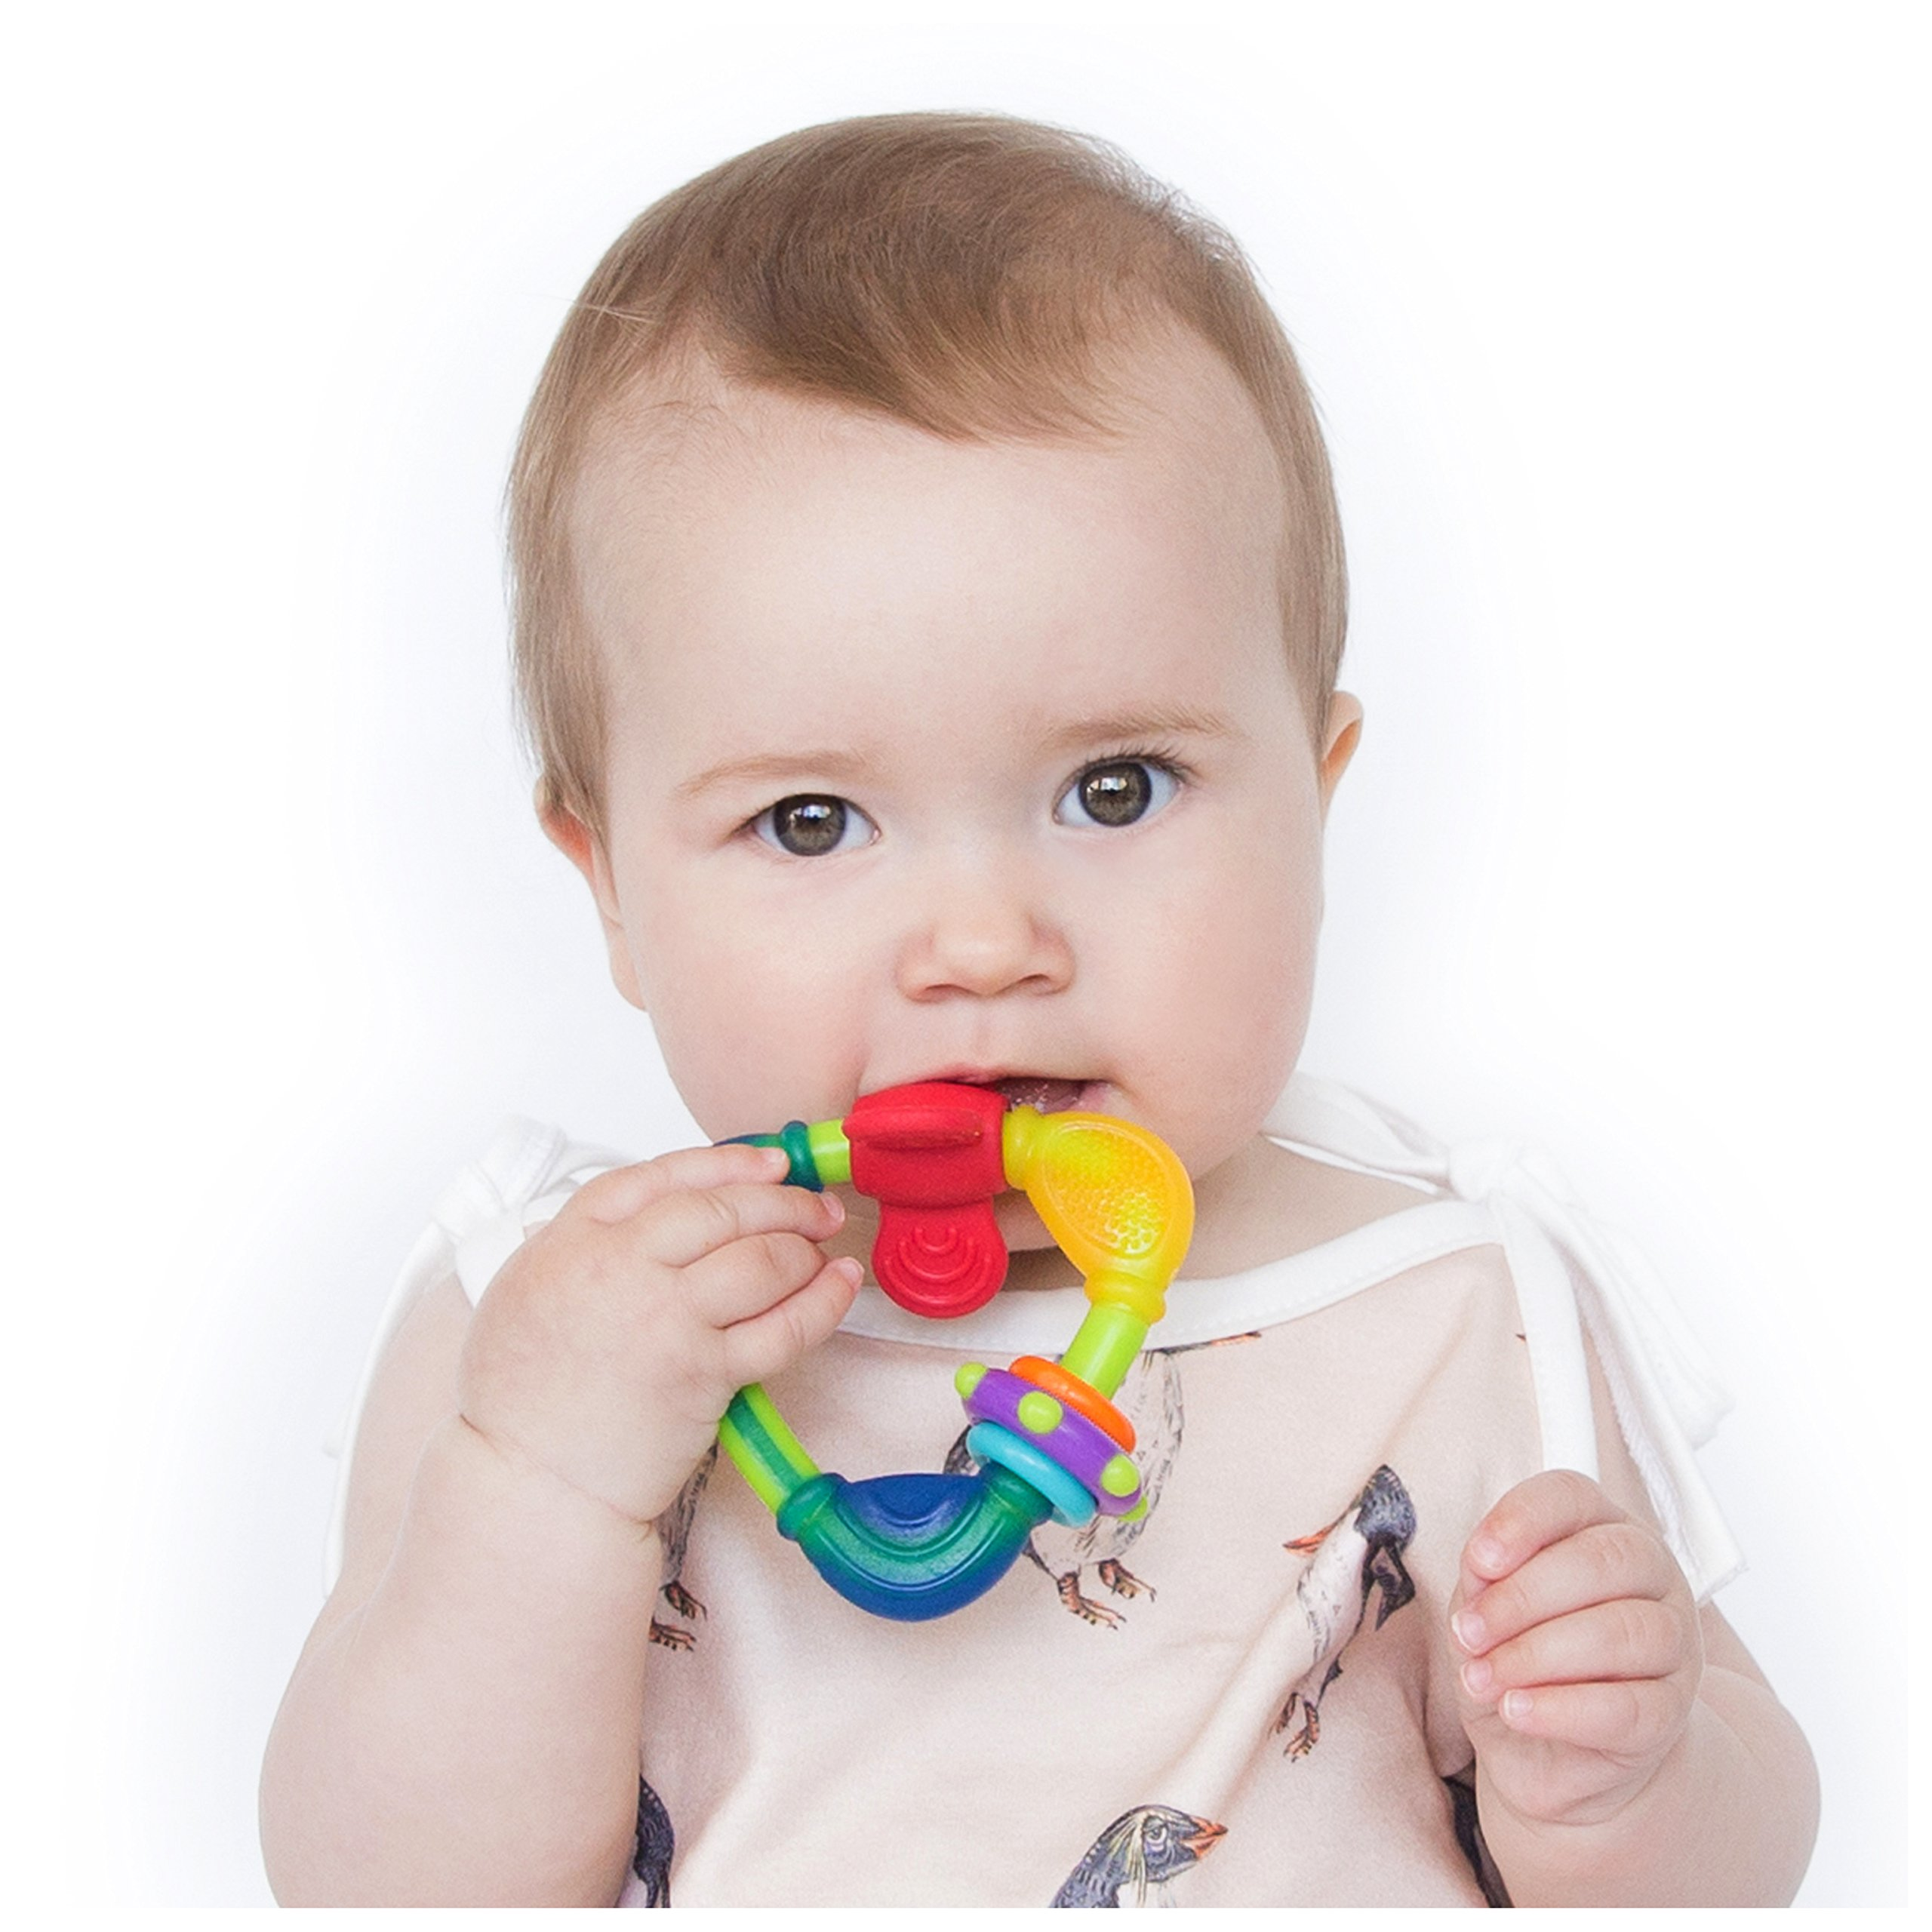 When does a baby smile for the first time and why ...